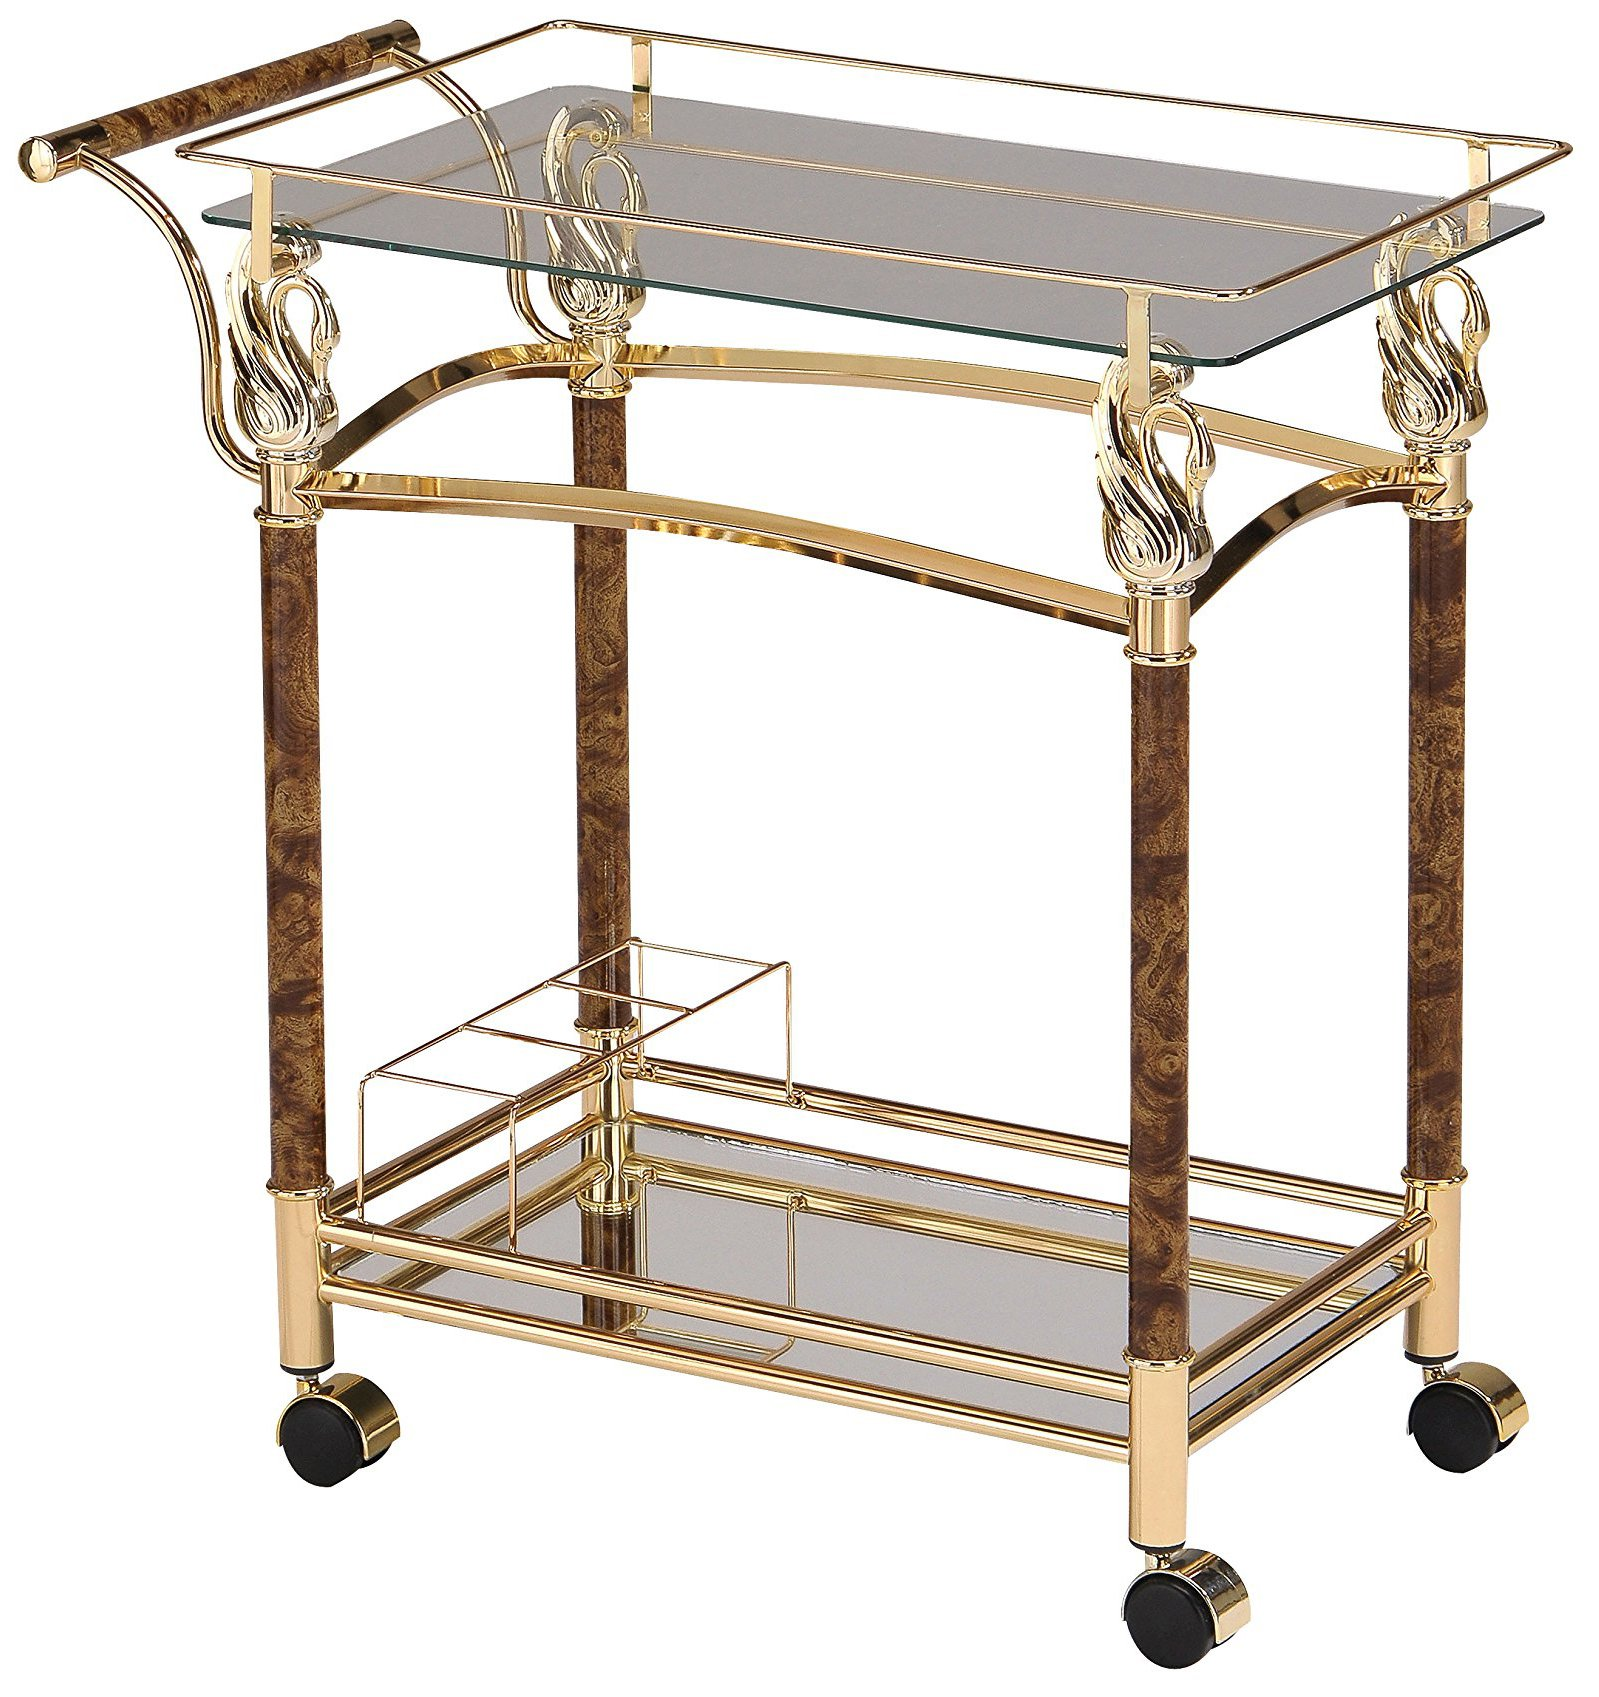 ACME Furniture 98002 Helmut Serving Cart, Golden Plated/Clear Glass by Acme Furniture